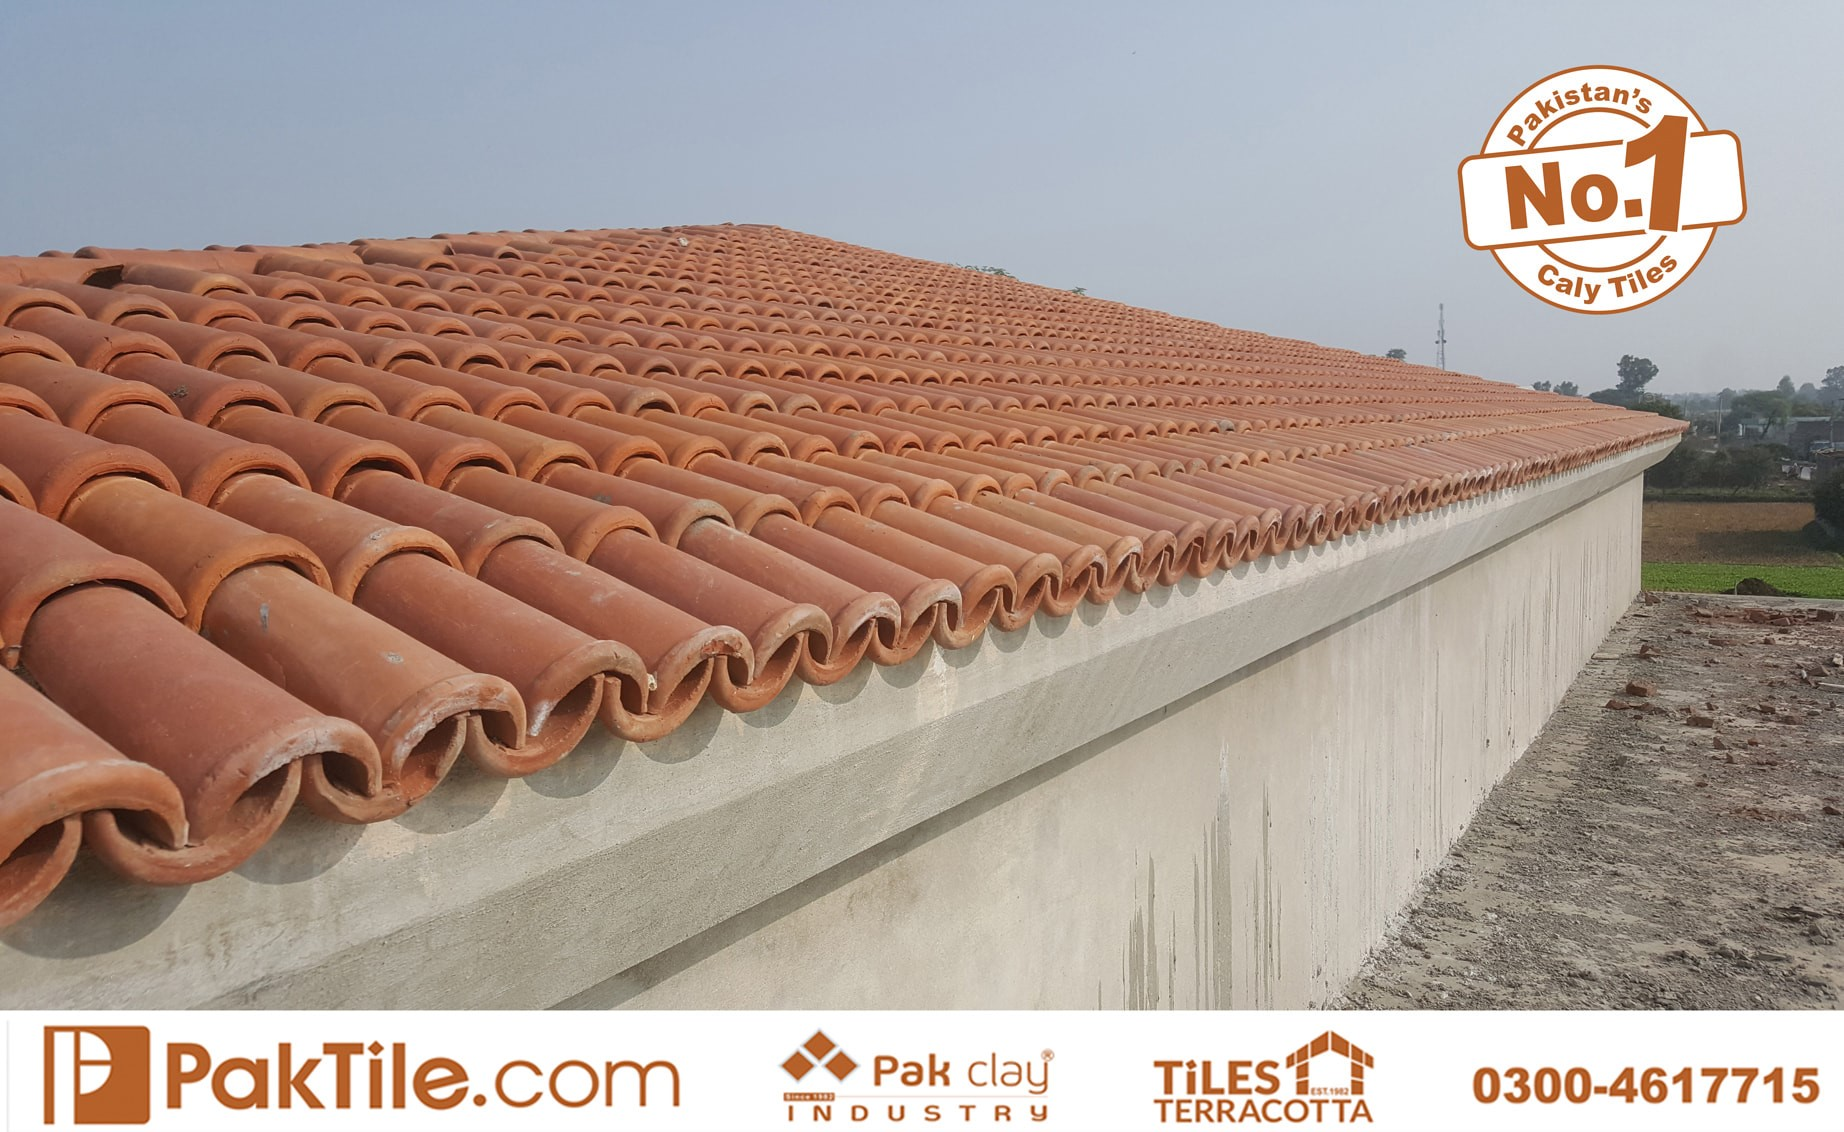 4 Pak Clay Red Terracotta Roofing Khaprail Tiles in Islamabad Images.